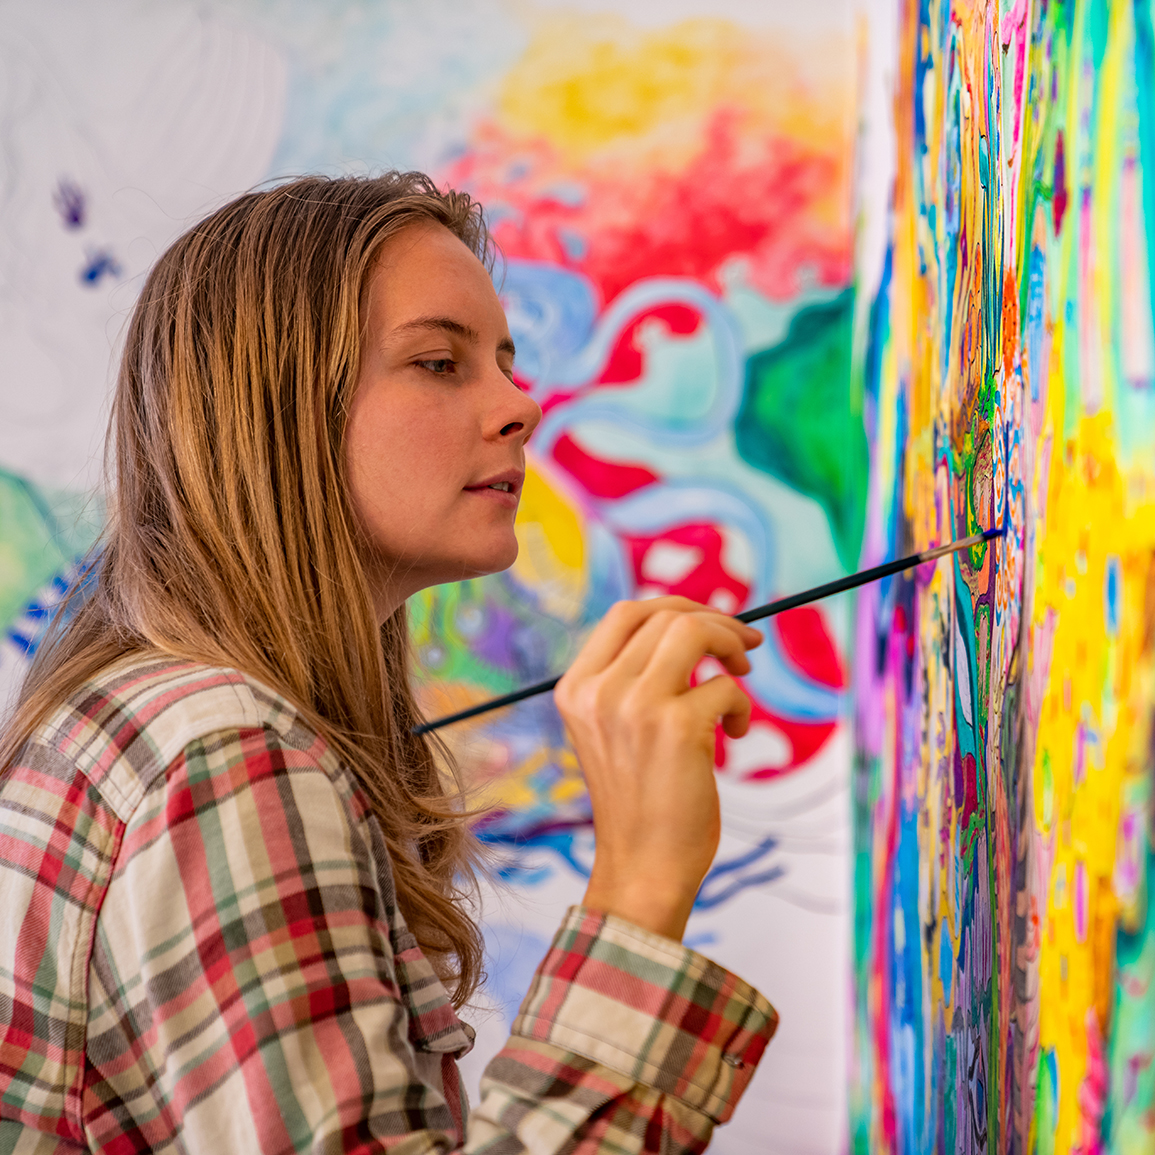 Joyful Young Female Artist Painting On The Wall, Using Brush And